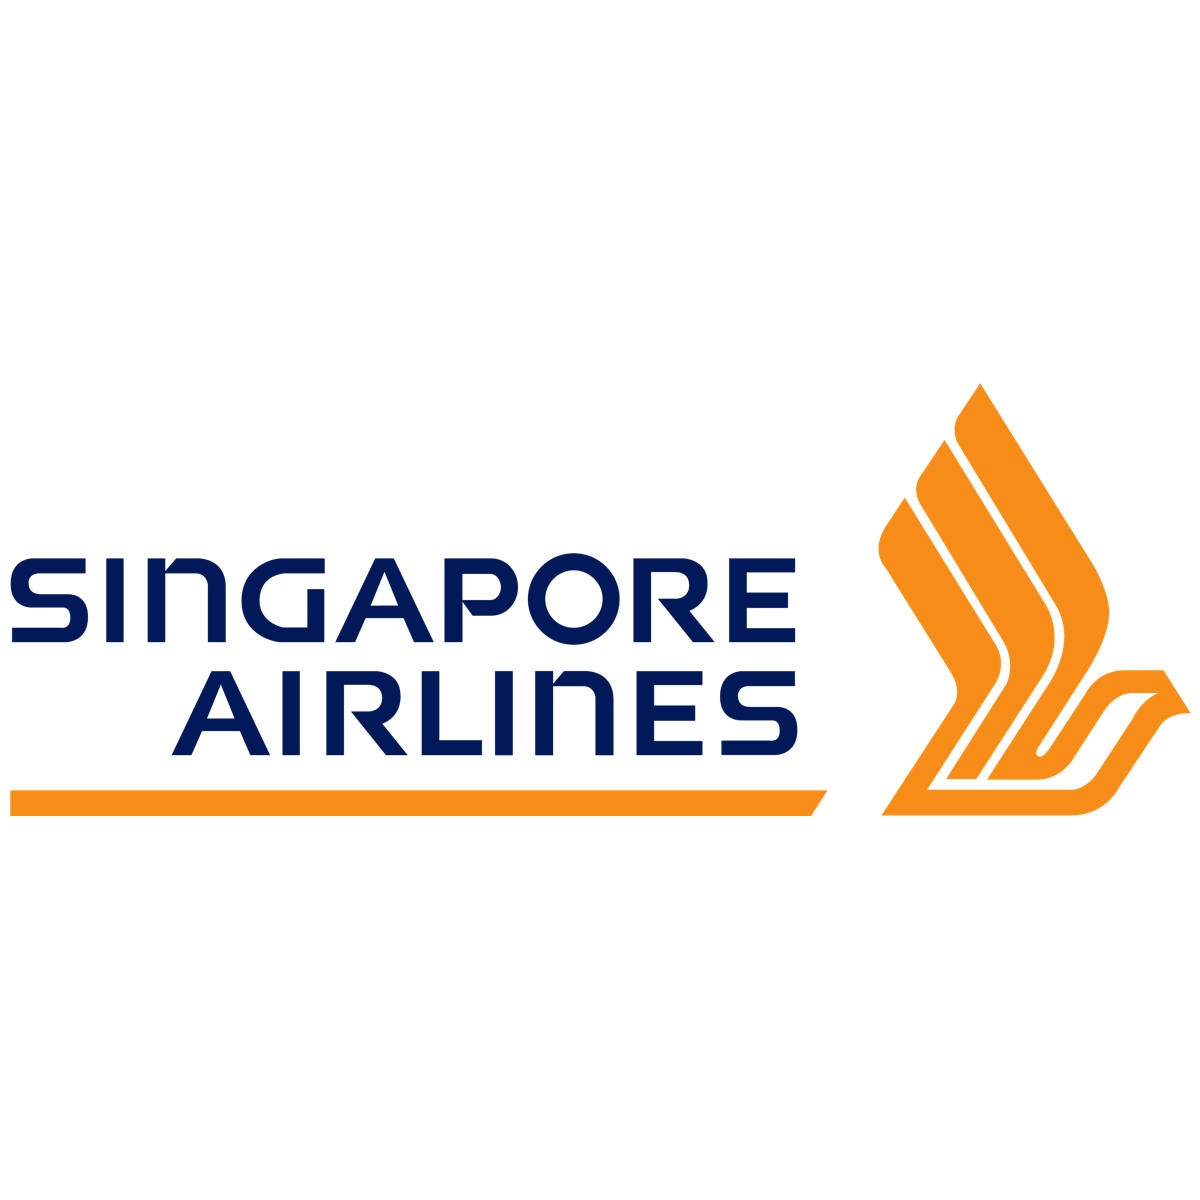 Singapore Airlines (SIA SP) - UOB Kay Hian 2017-06-21: Operating Environment Unlikely To Improve Amid Excess Capacity And Terror Attacks